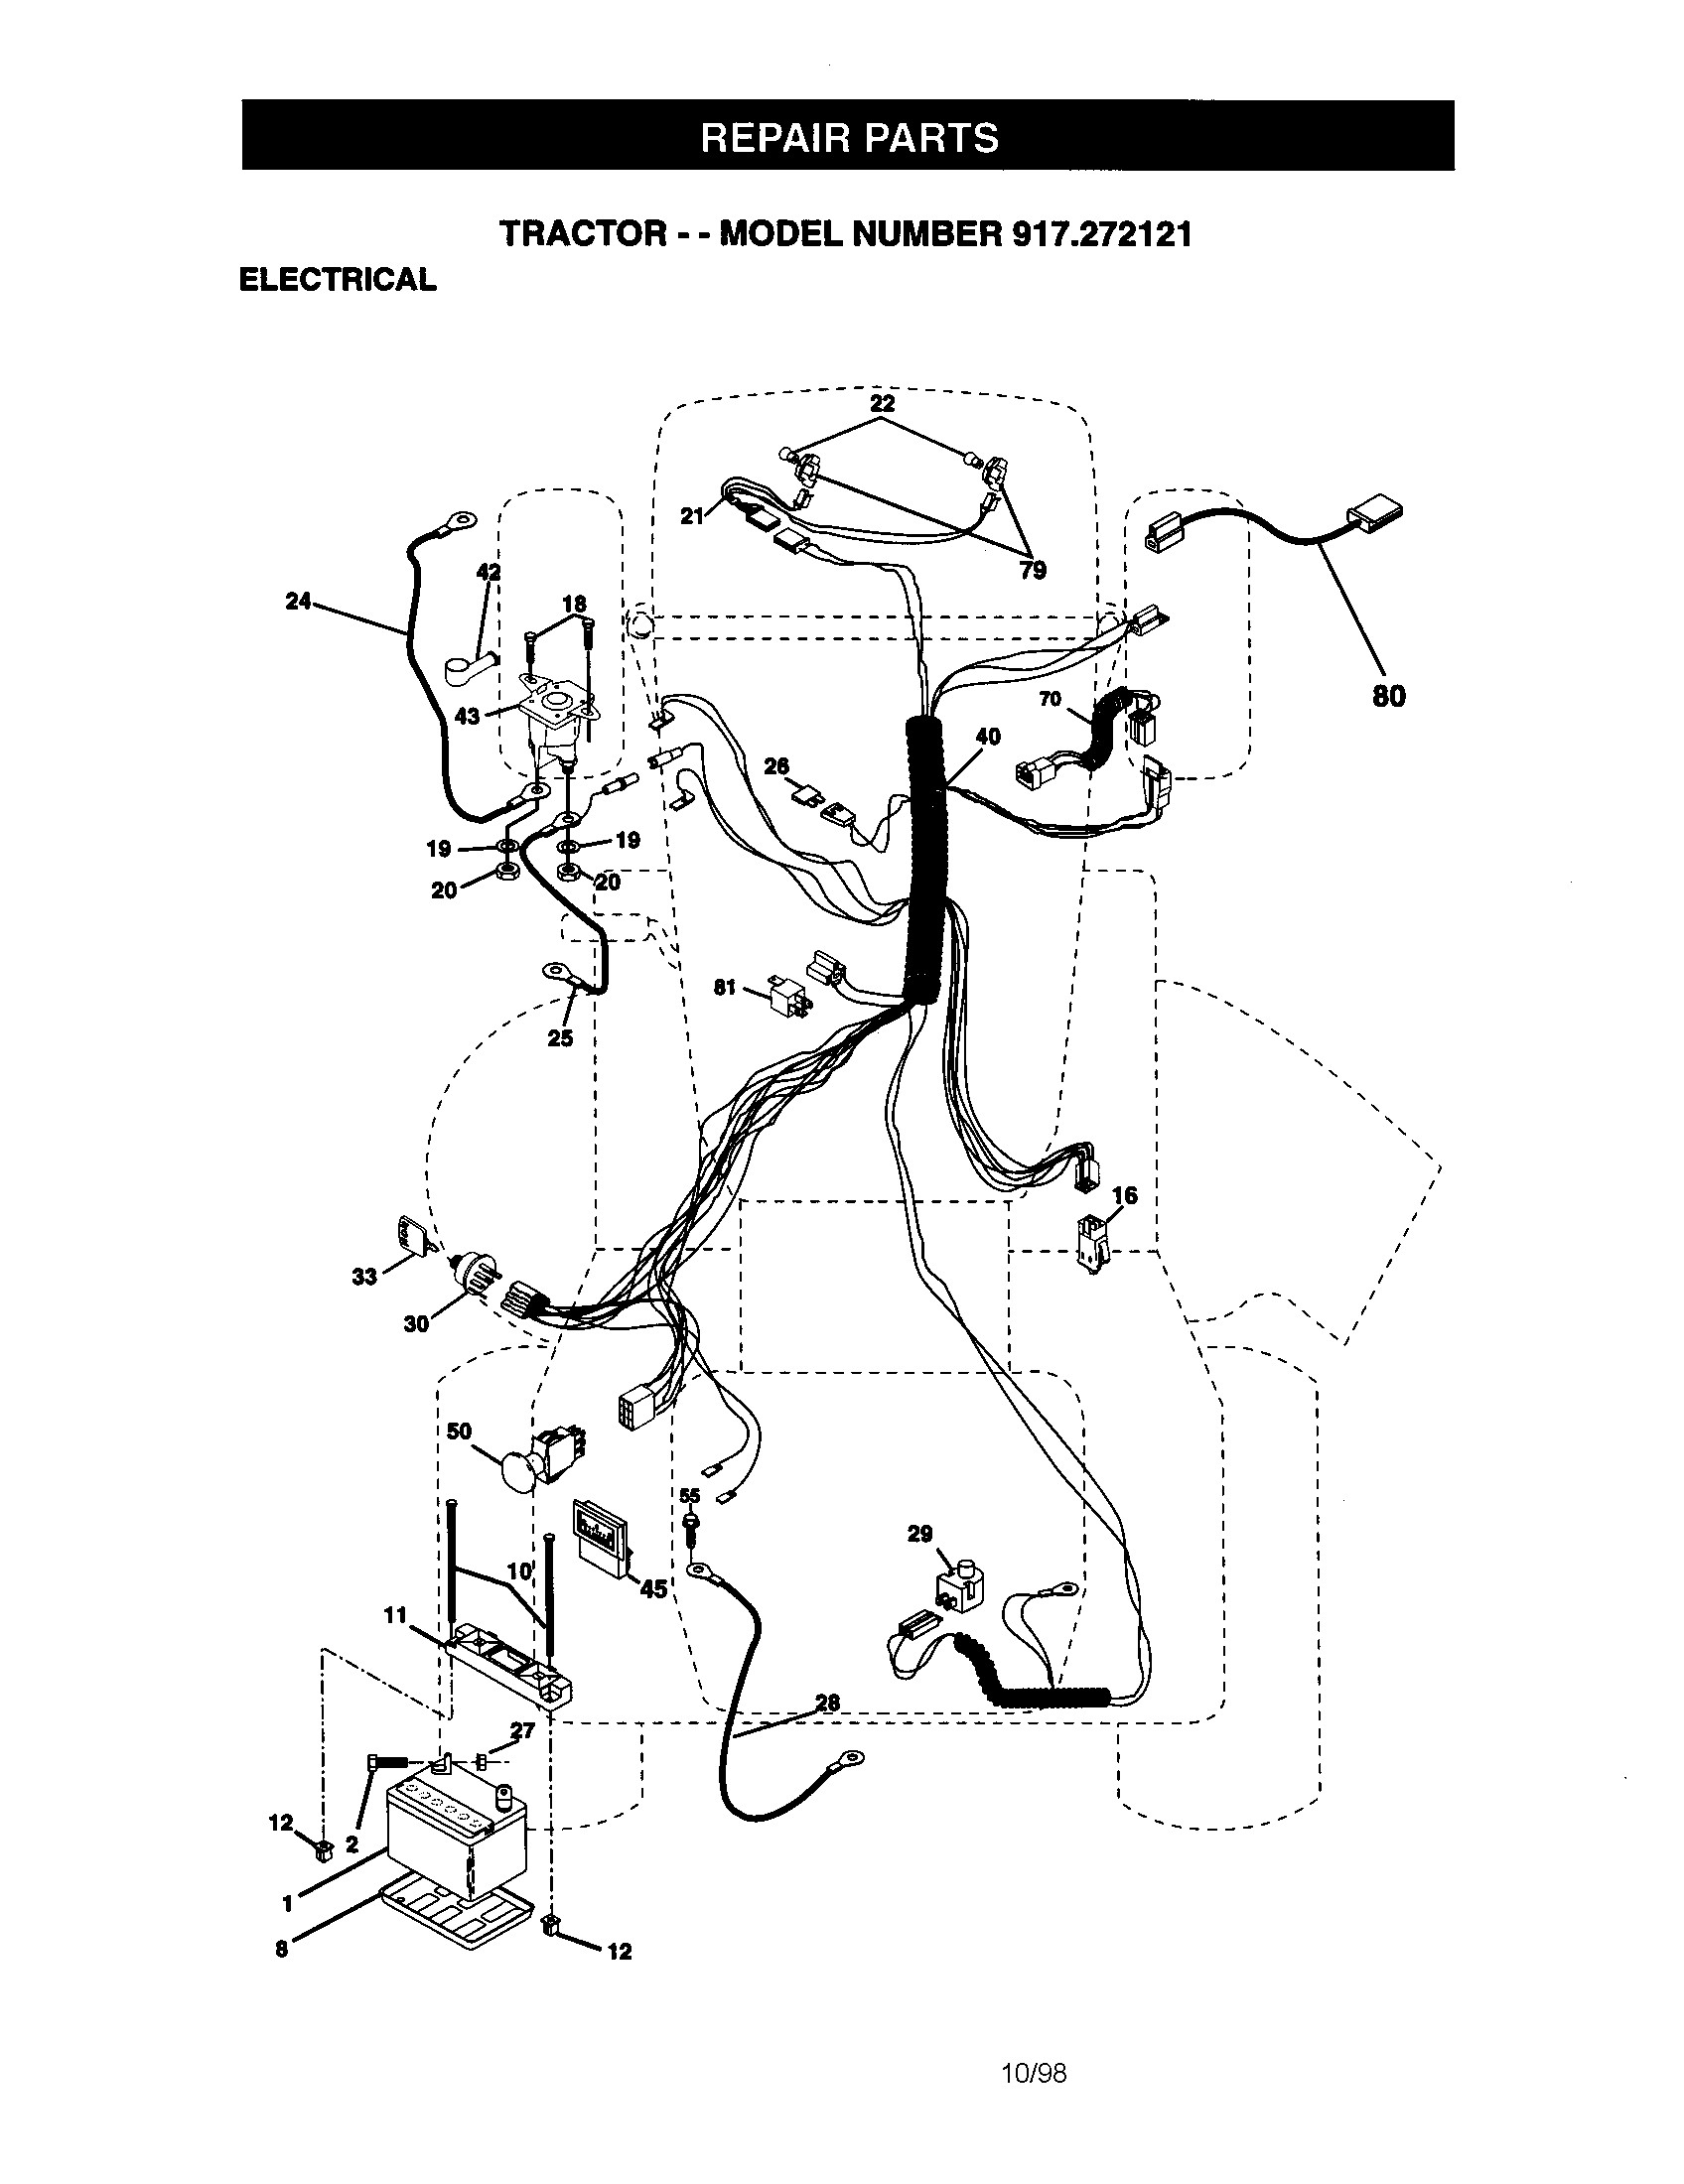 20 Hp Kohler Engine Wiring Diagram 917 Craftsman 18 5 Hp